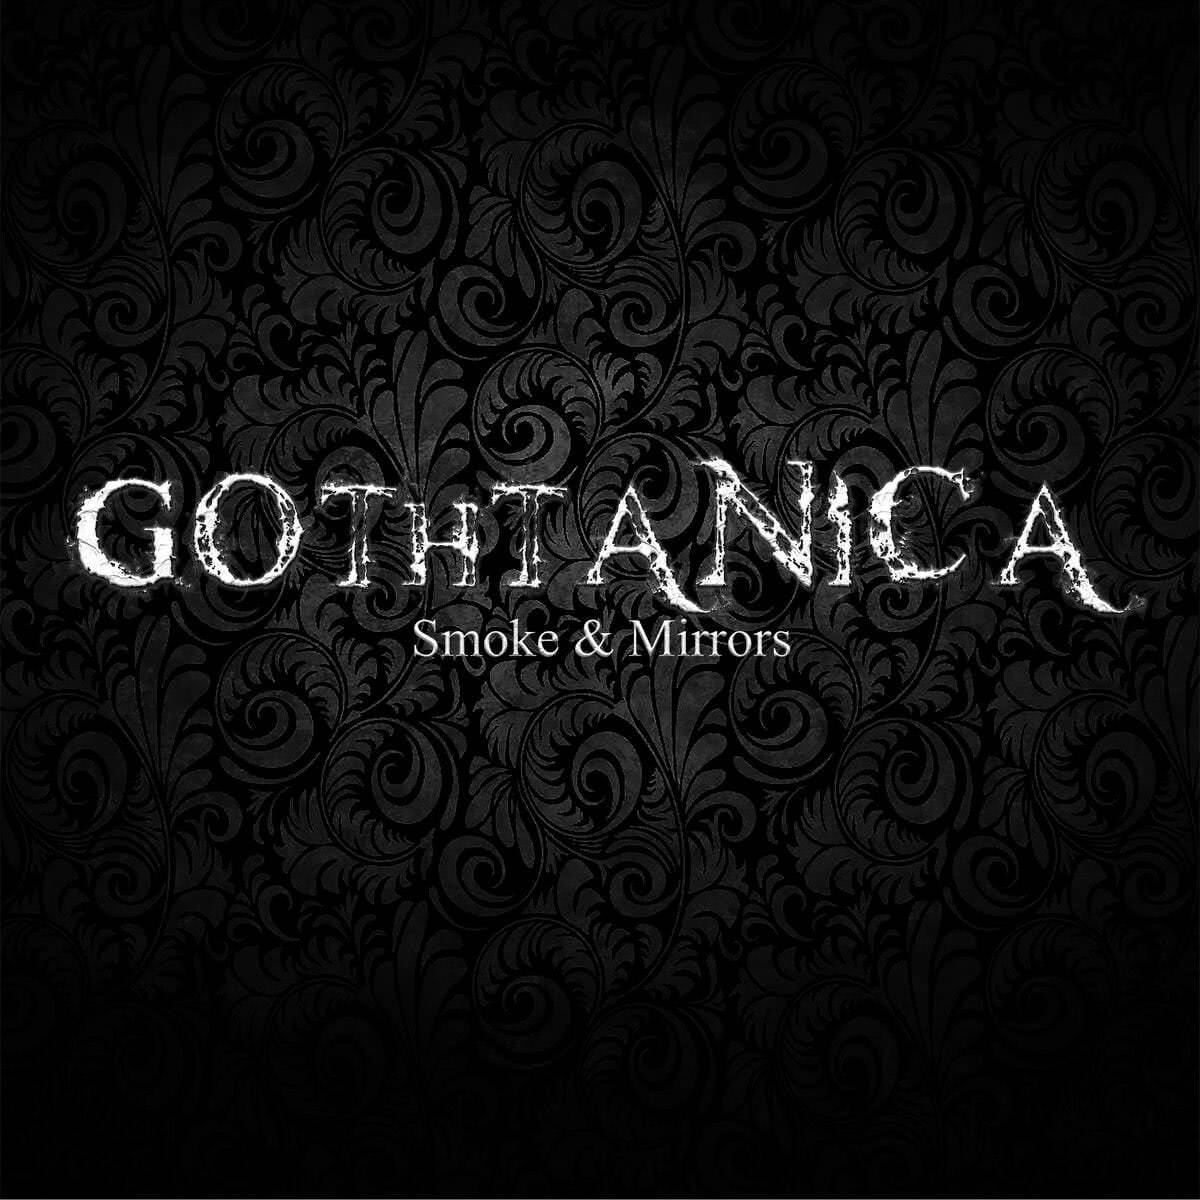 Gothtanica - Smoke & Mirrors (Single) (2021) скачать